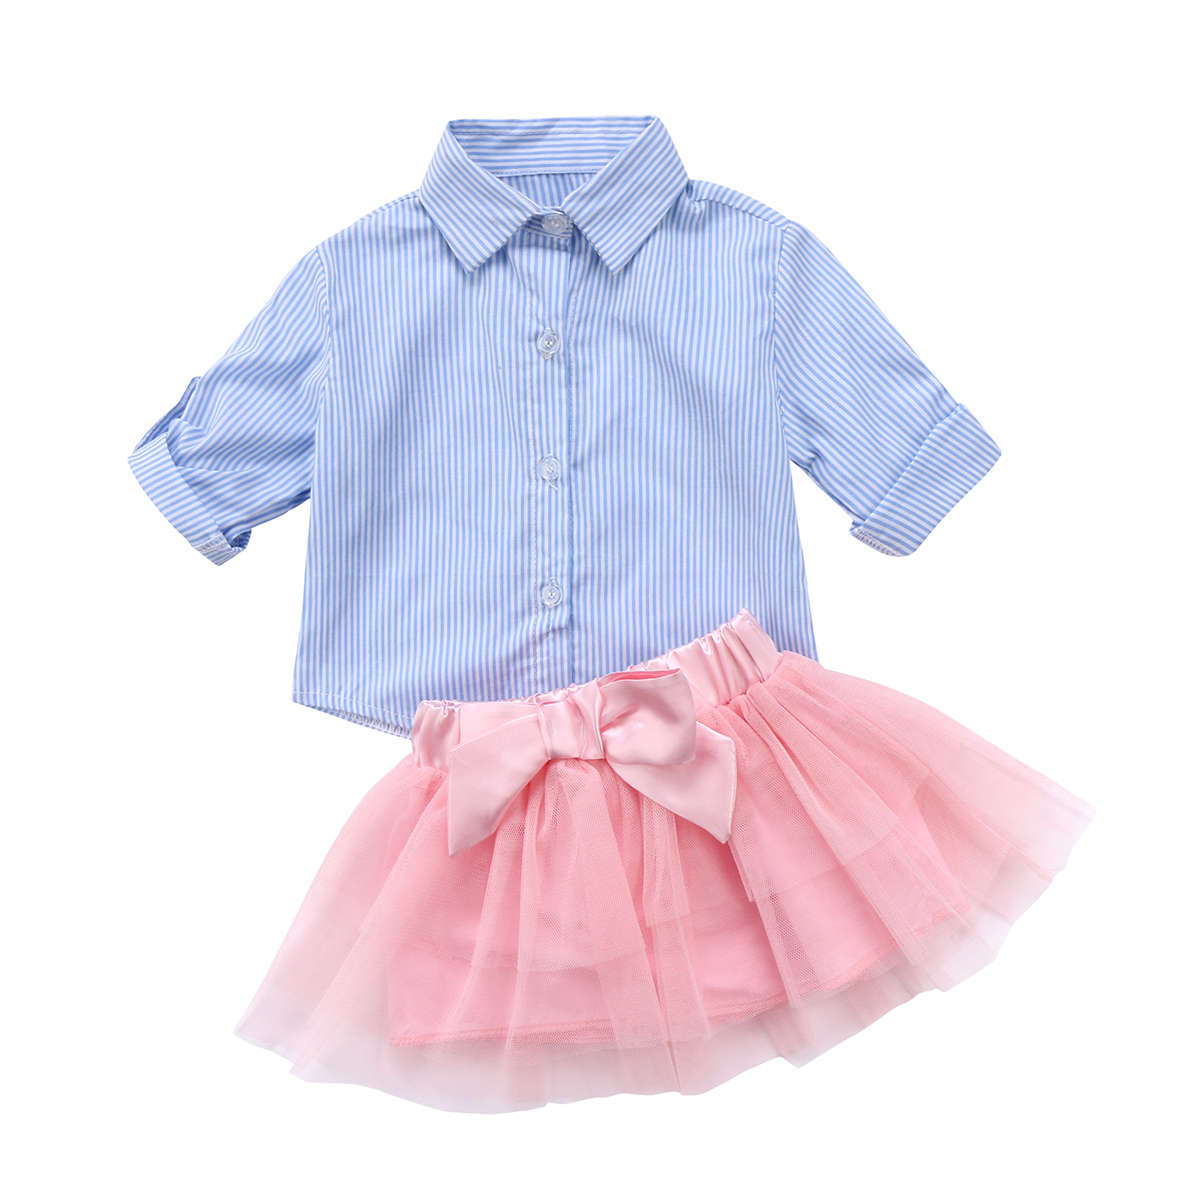 Helen115 Lovely Kids baby girl clothes Striped Shirt +Lace Ball Gown Skirt Outfit Clothing Set 6M-5Y 2pcs children outfit clothes kids baby girl off shoulder cotton ruffled sleeve tops striped t shirt blue denim jeans sunsuit set